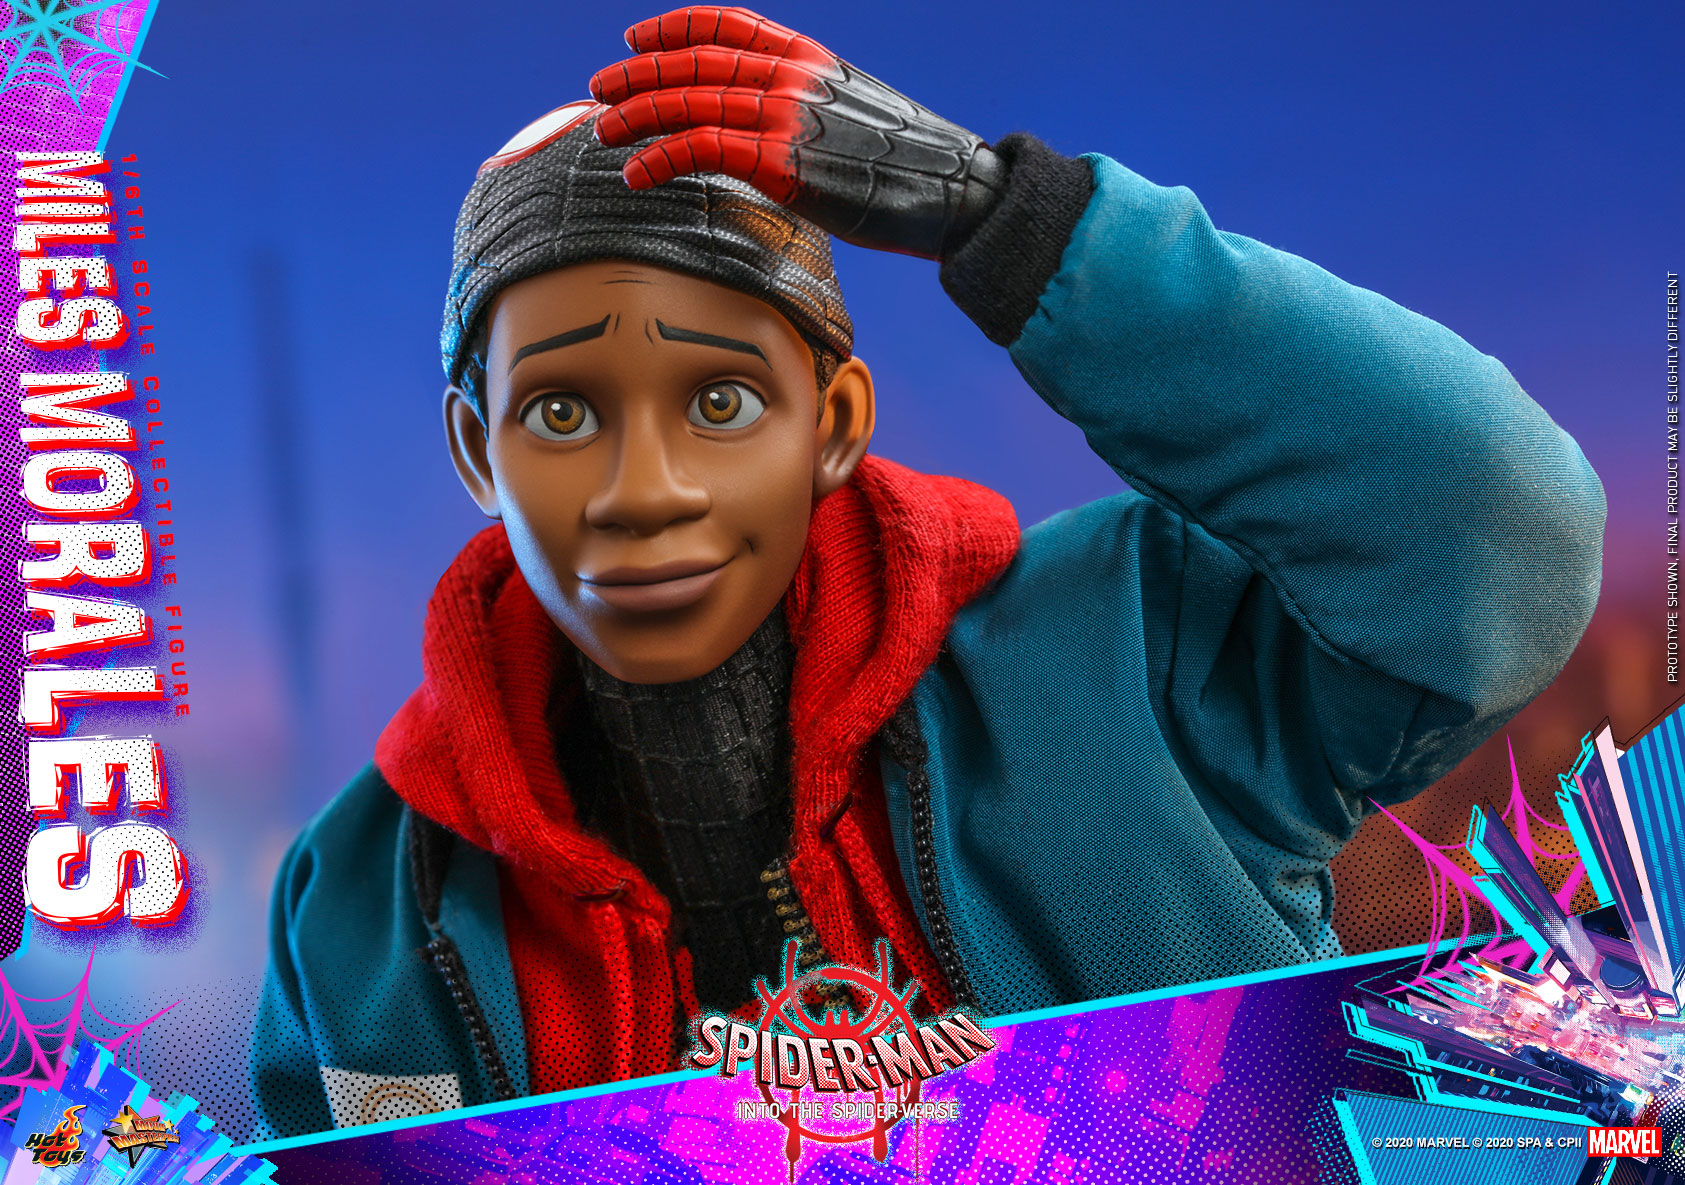 Hot-Toys---Spider-Man-into-the-Spider-Verse---Miles-Morales-collectible-figure_PR20